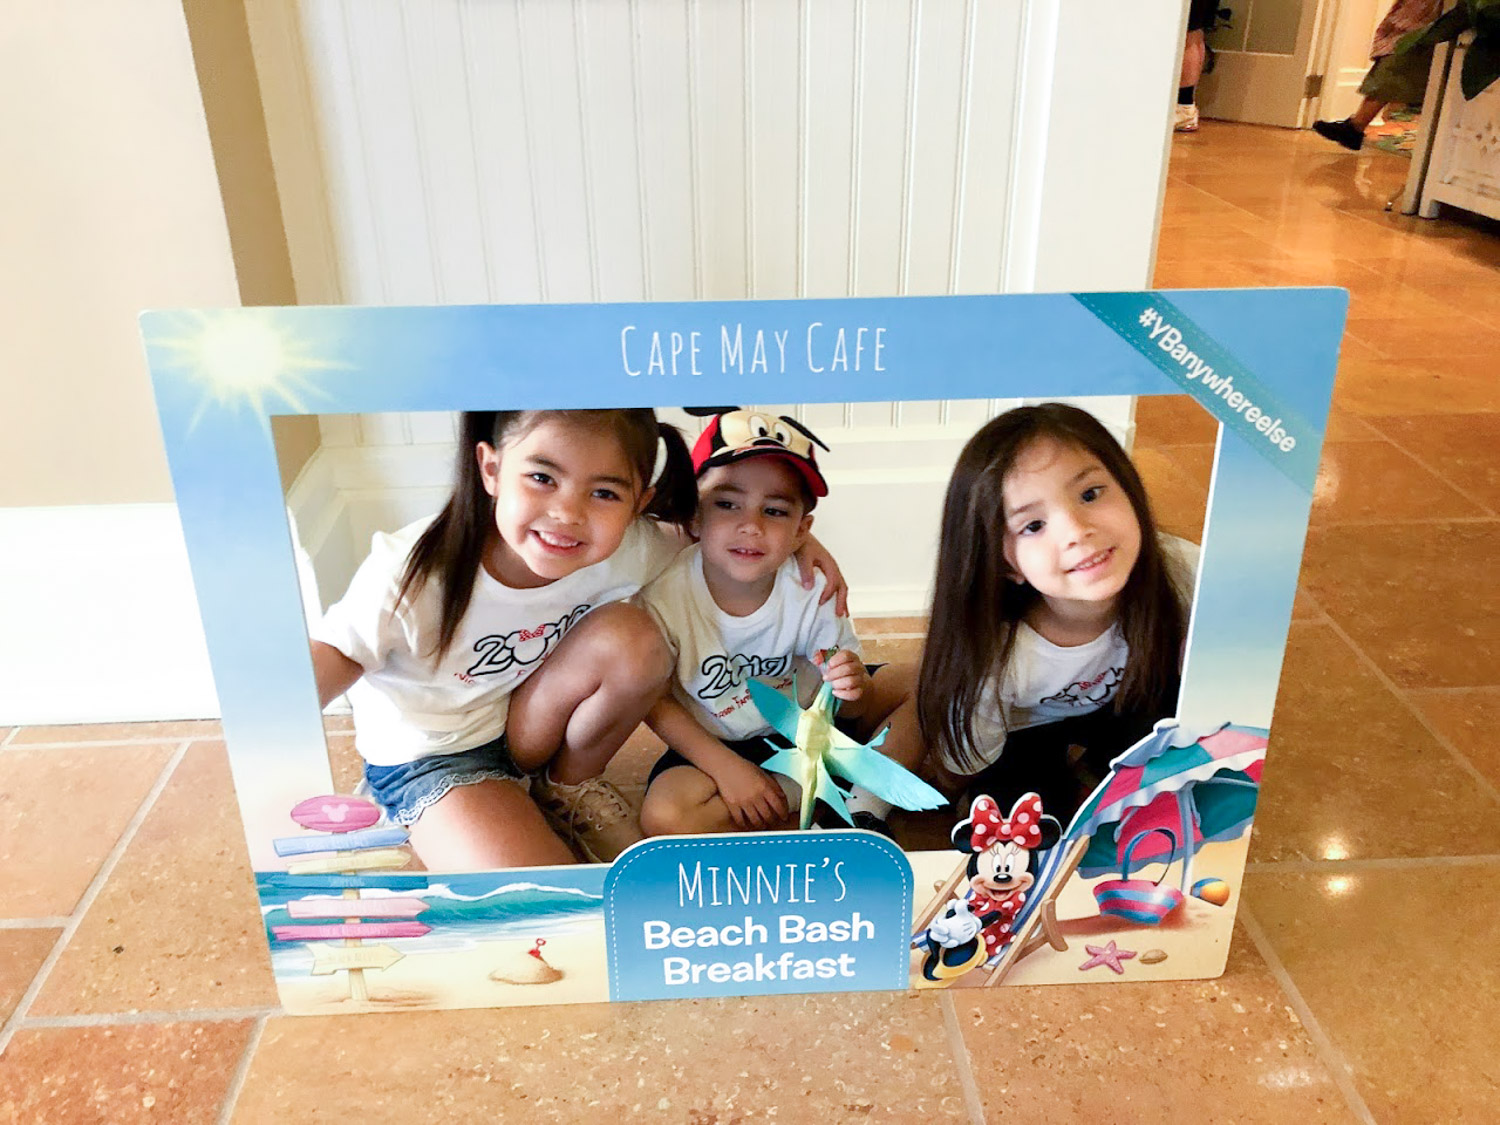 Disney Restaurants - ULTIMATE Dining Reviews and Tips from Family with Four Kids